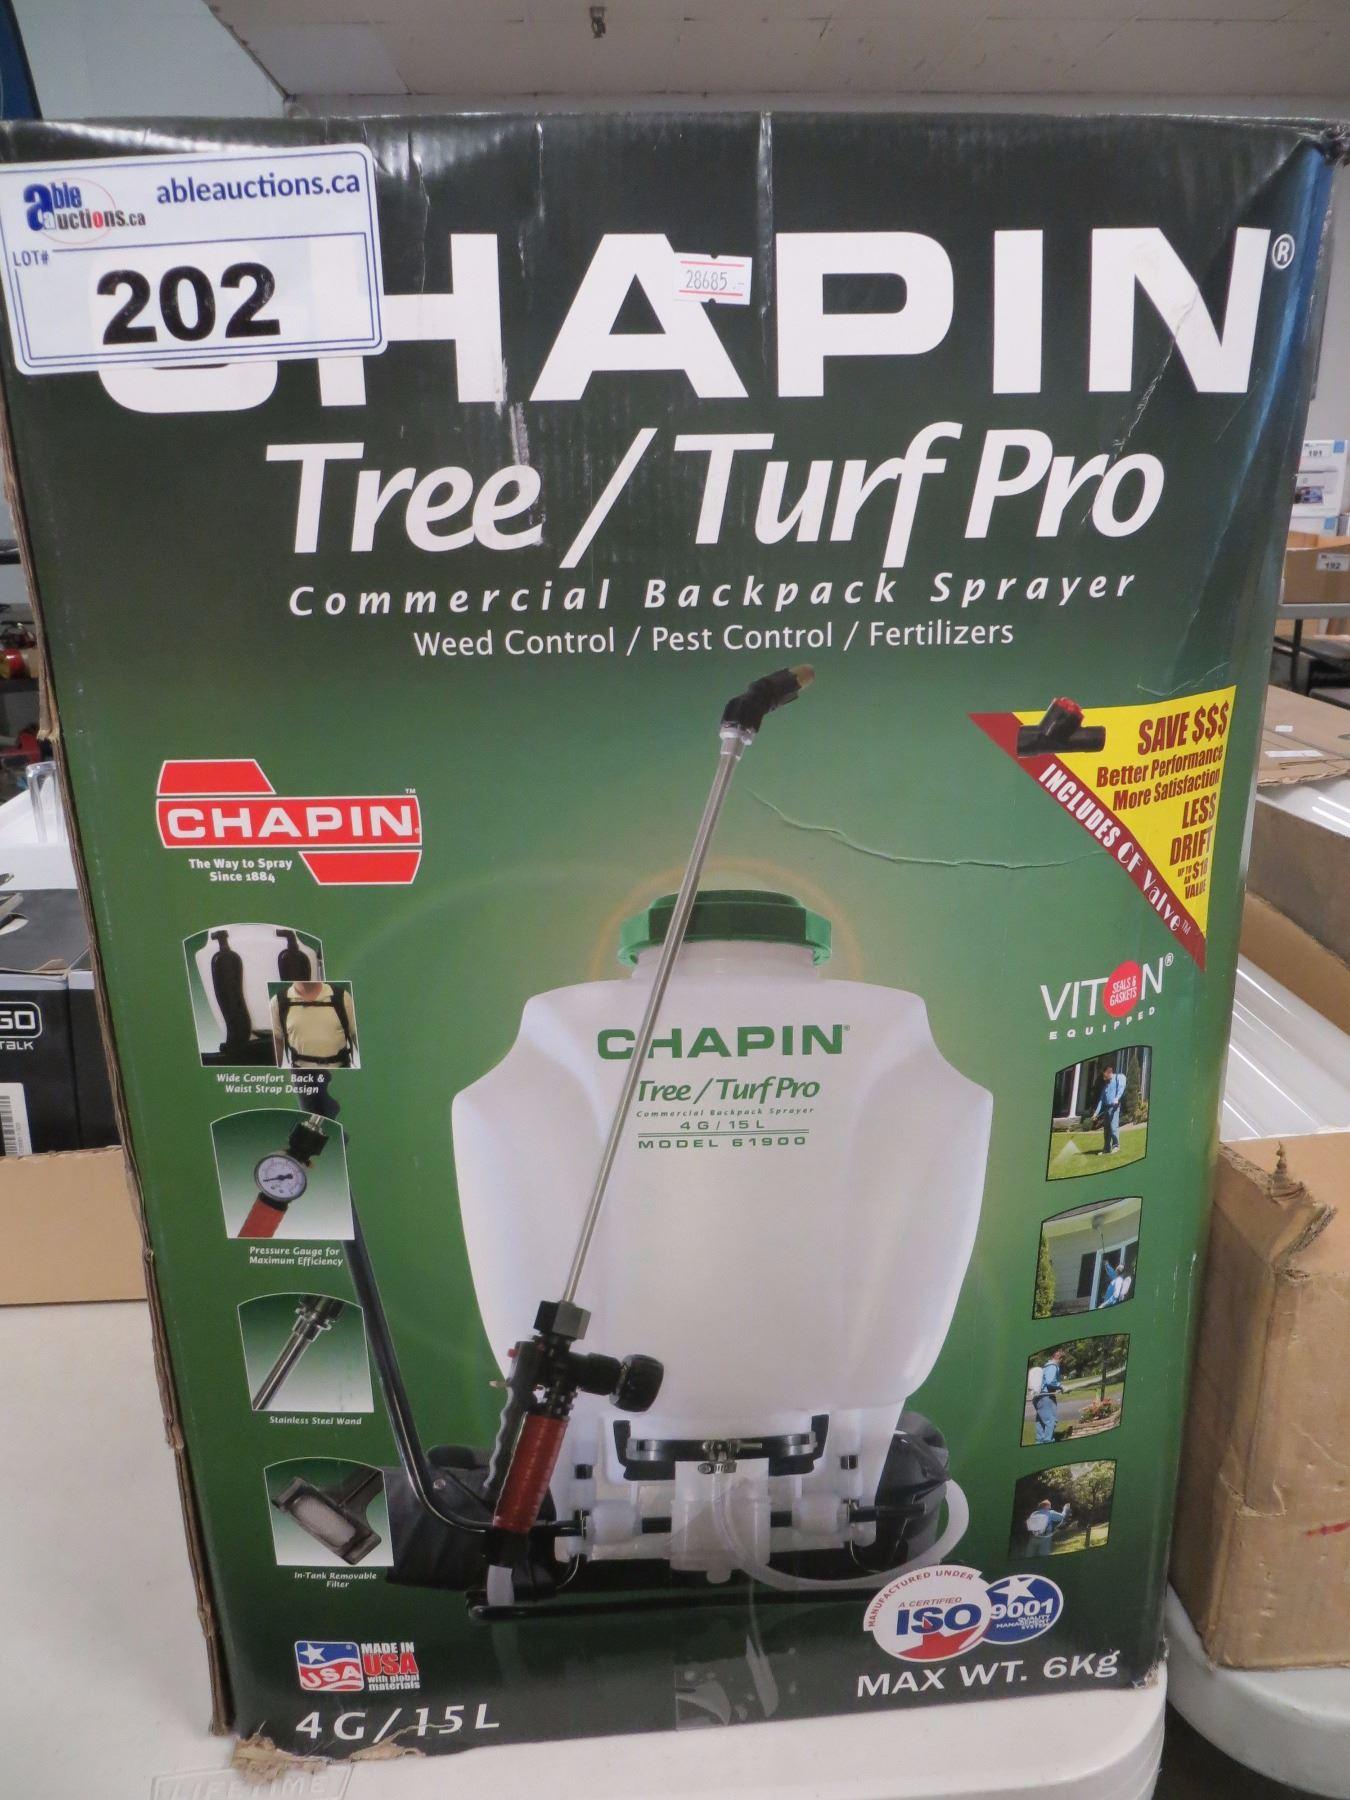 CHAPIN TREE/TURF PRO COMMERCIAL BACKPACK SPRAYER